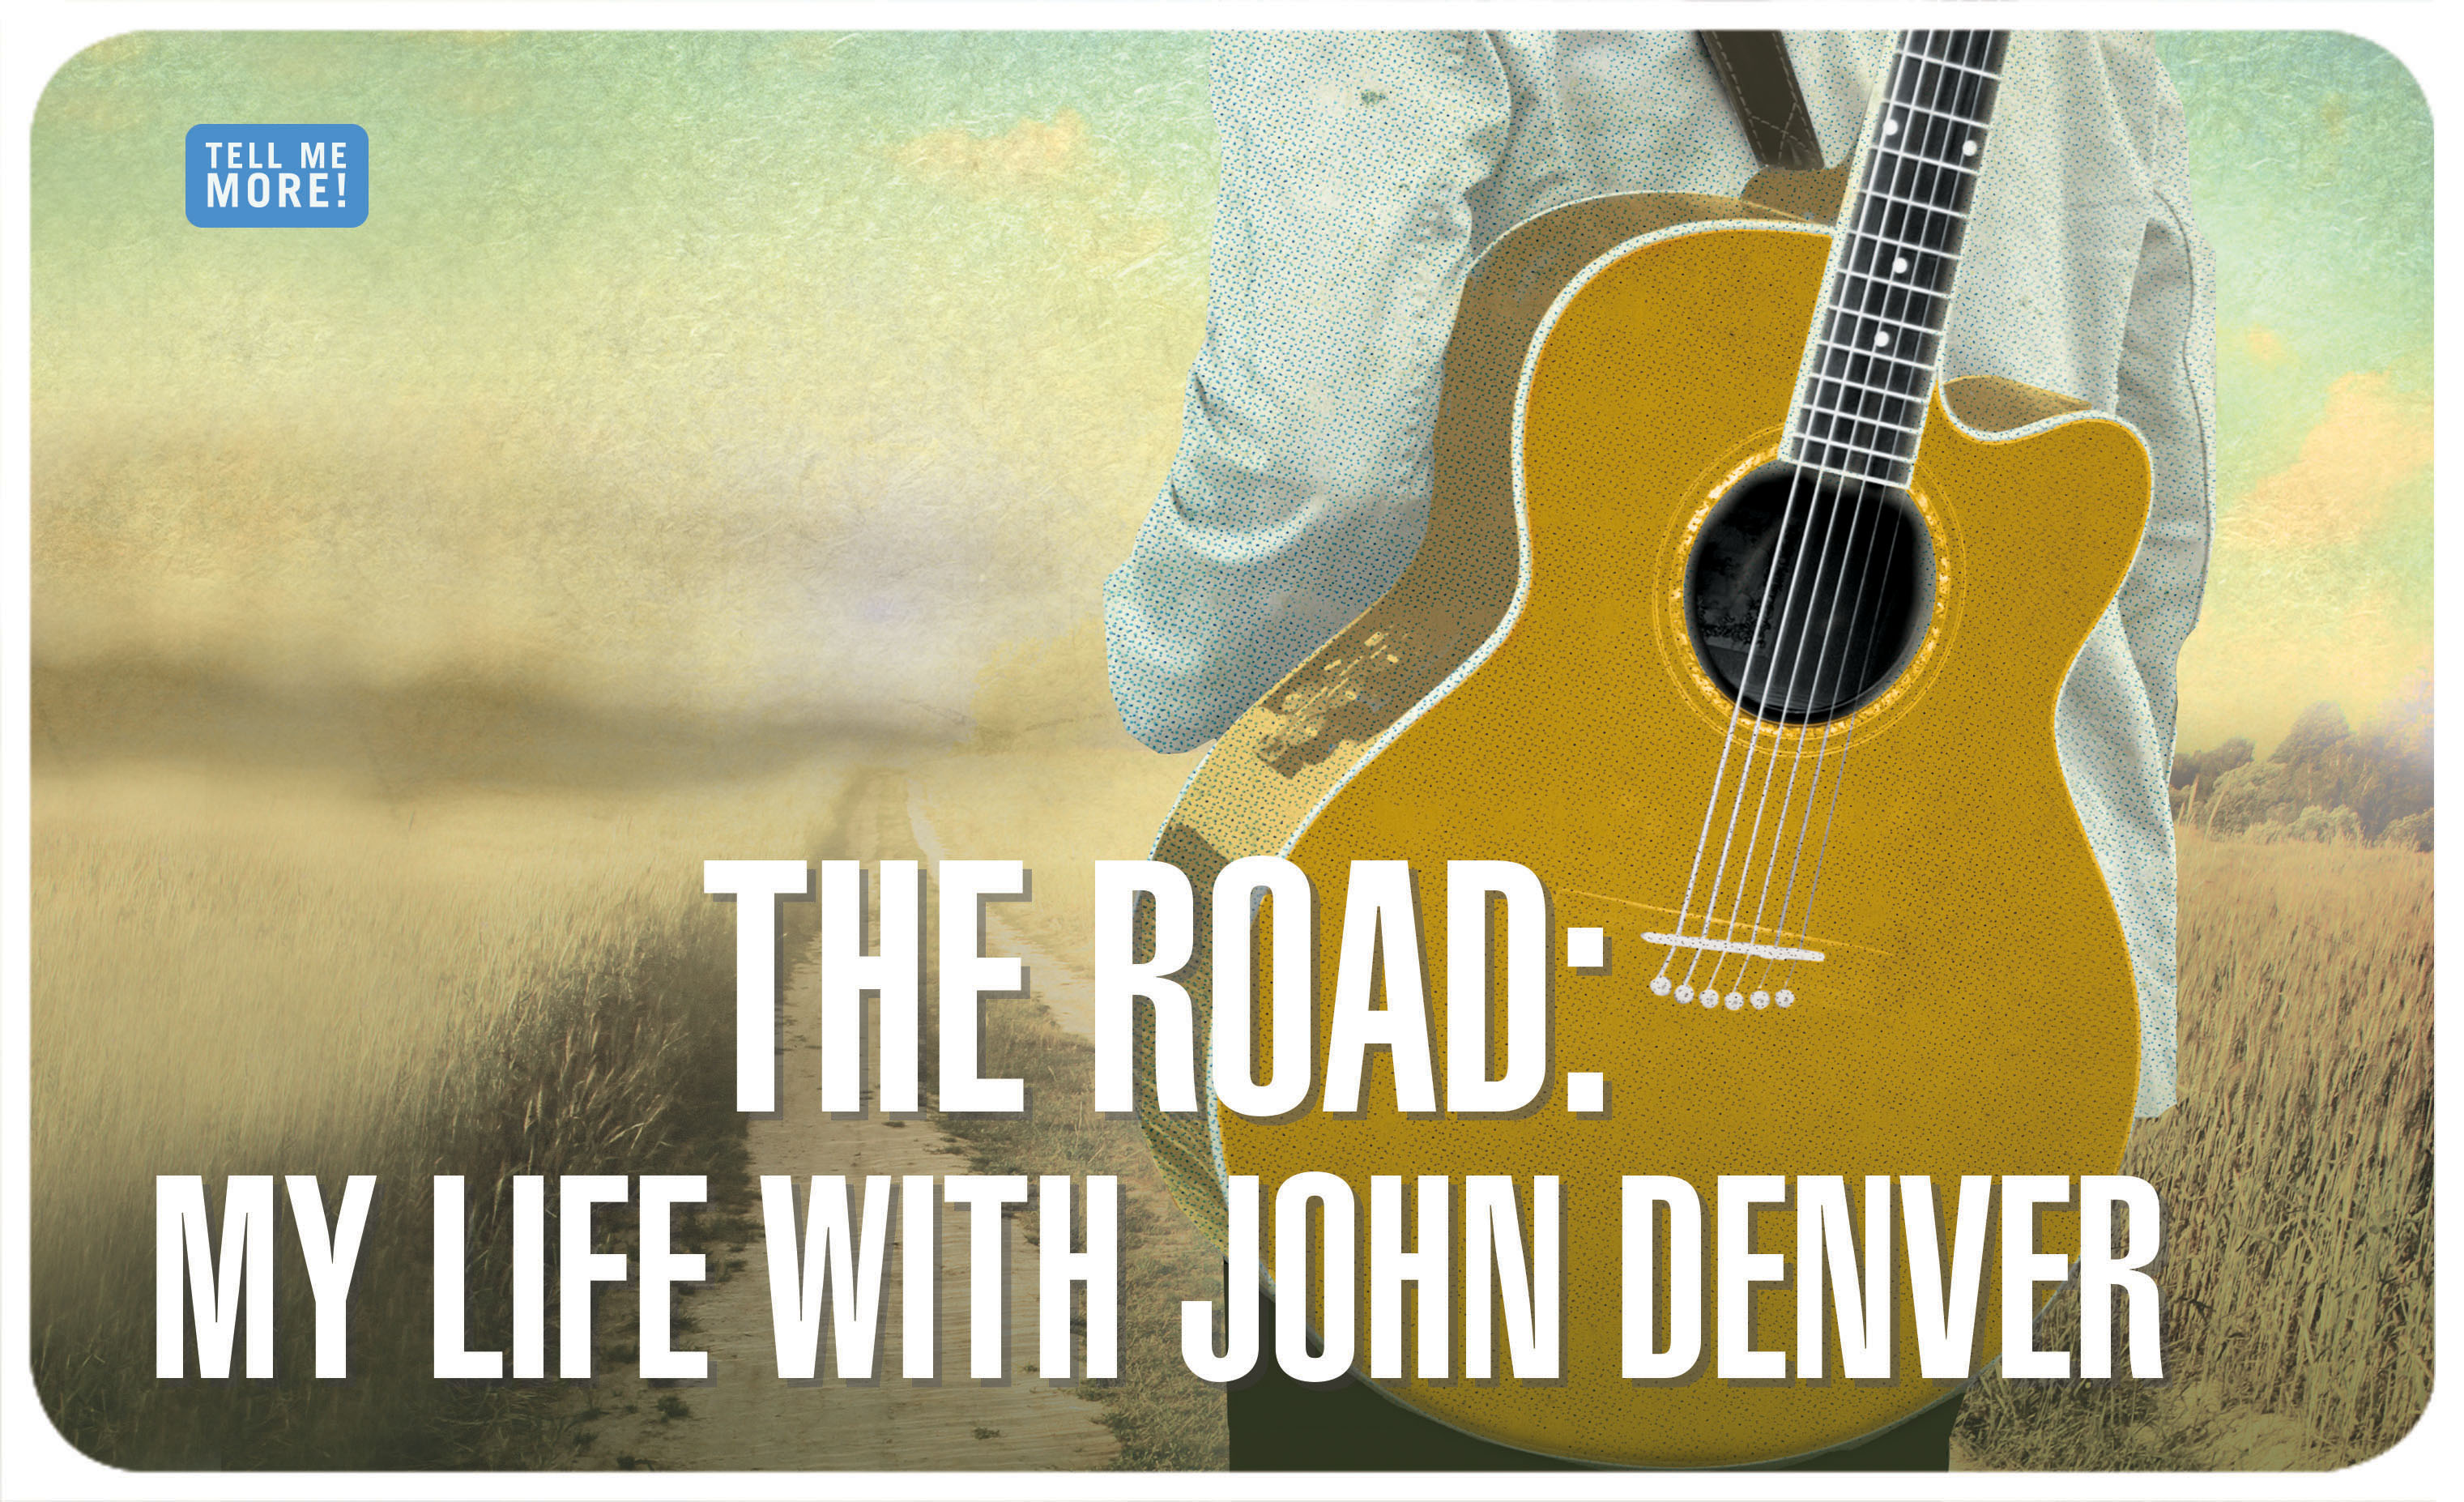 THE ROAD:  MY LIFE WITH JOHN DENVER